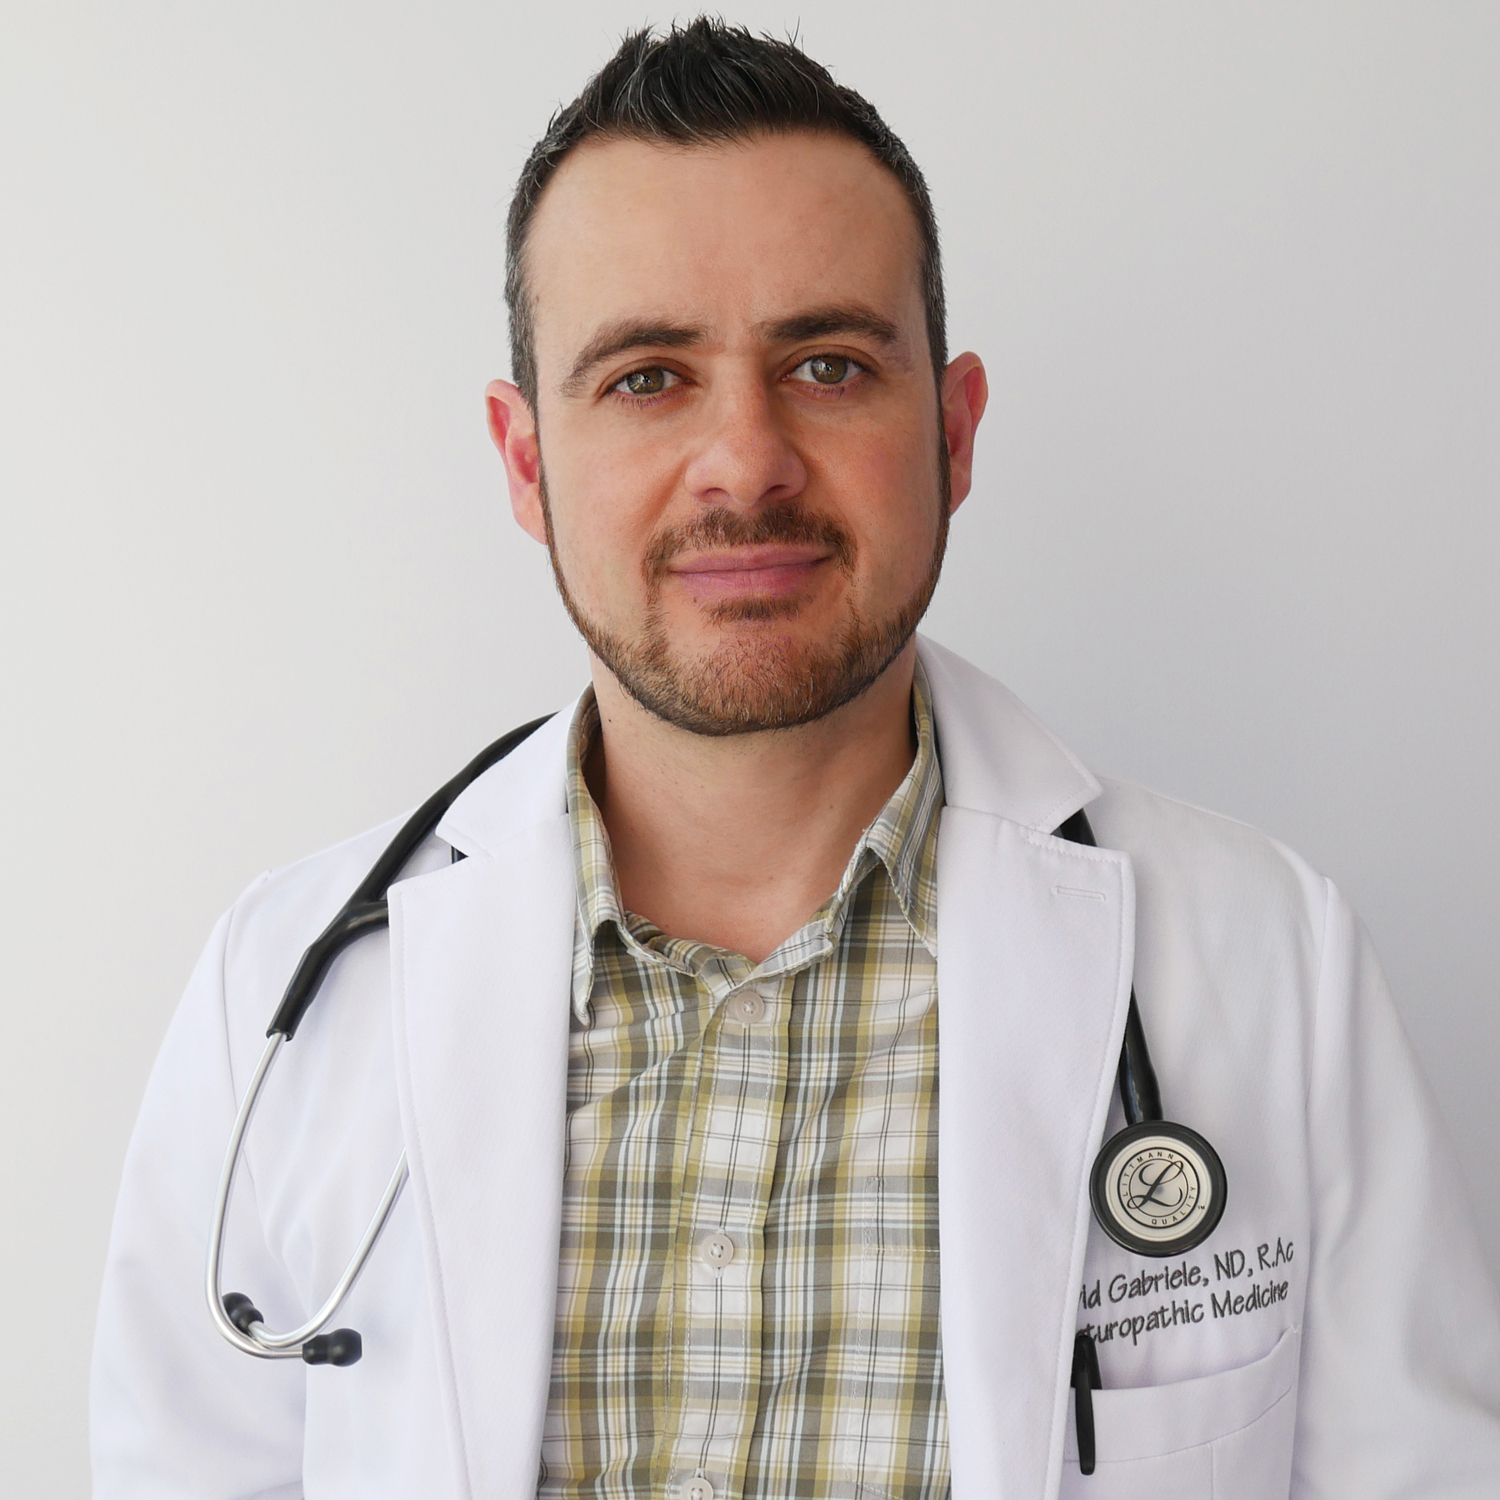 Dr David Gabriele Naturopathic Doctor